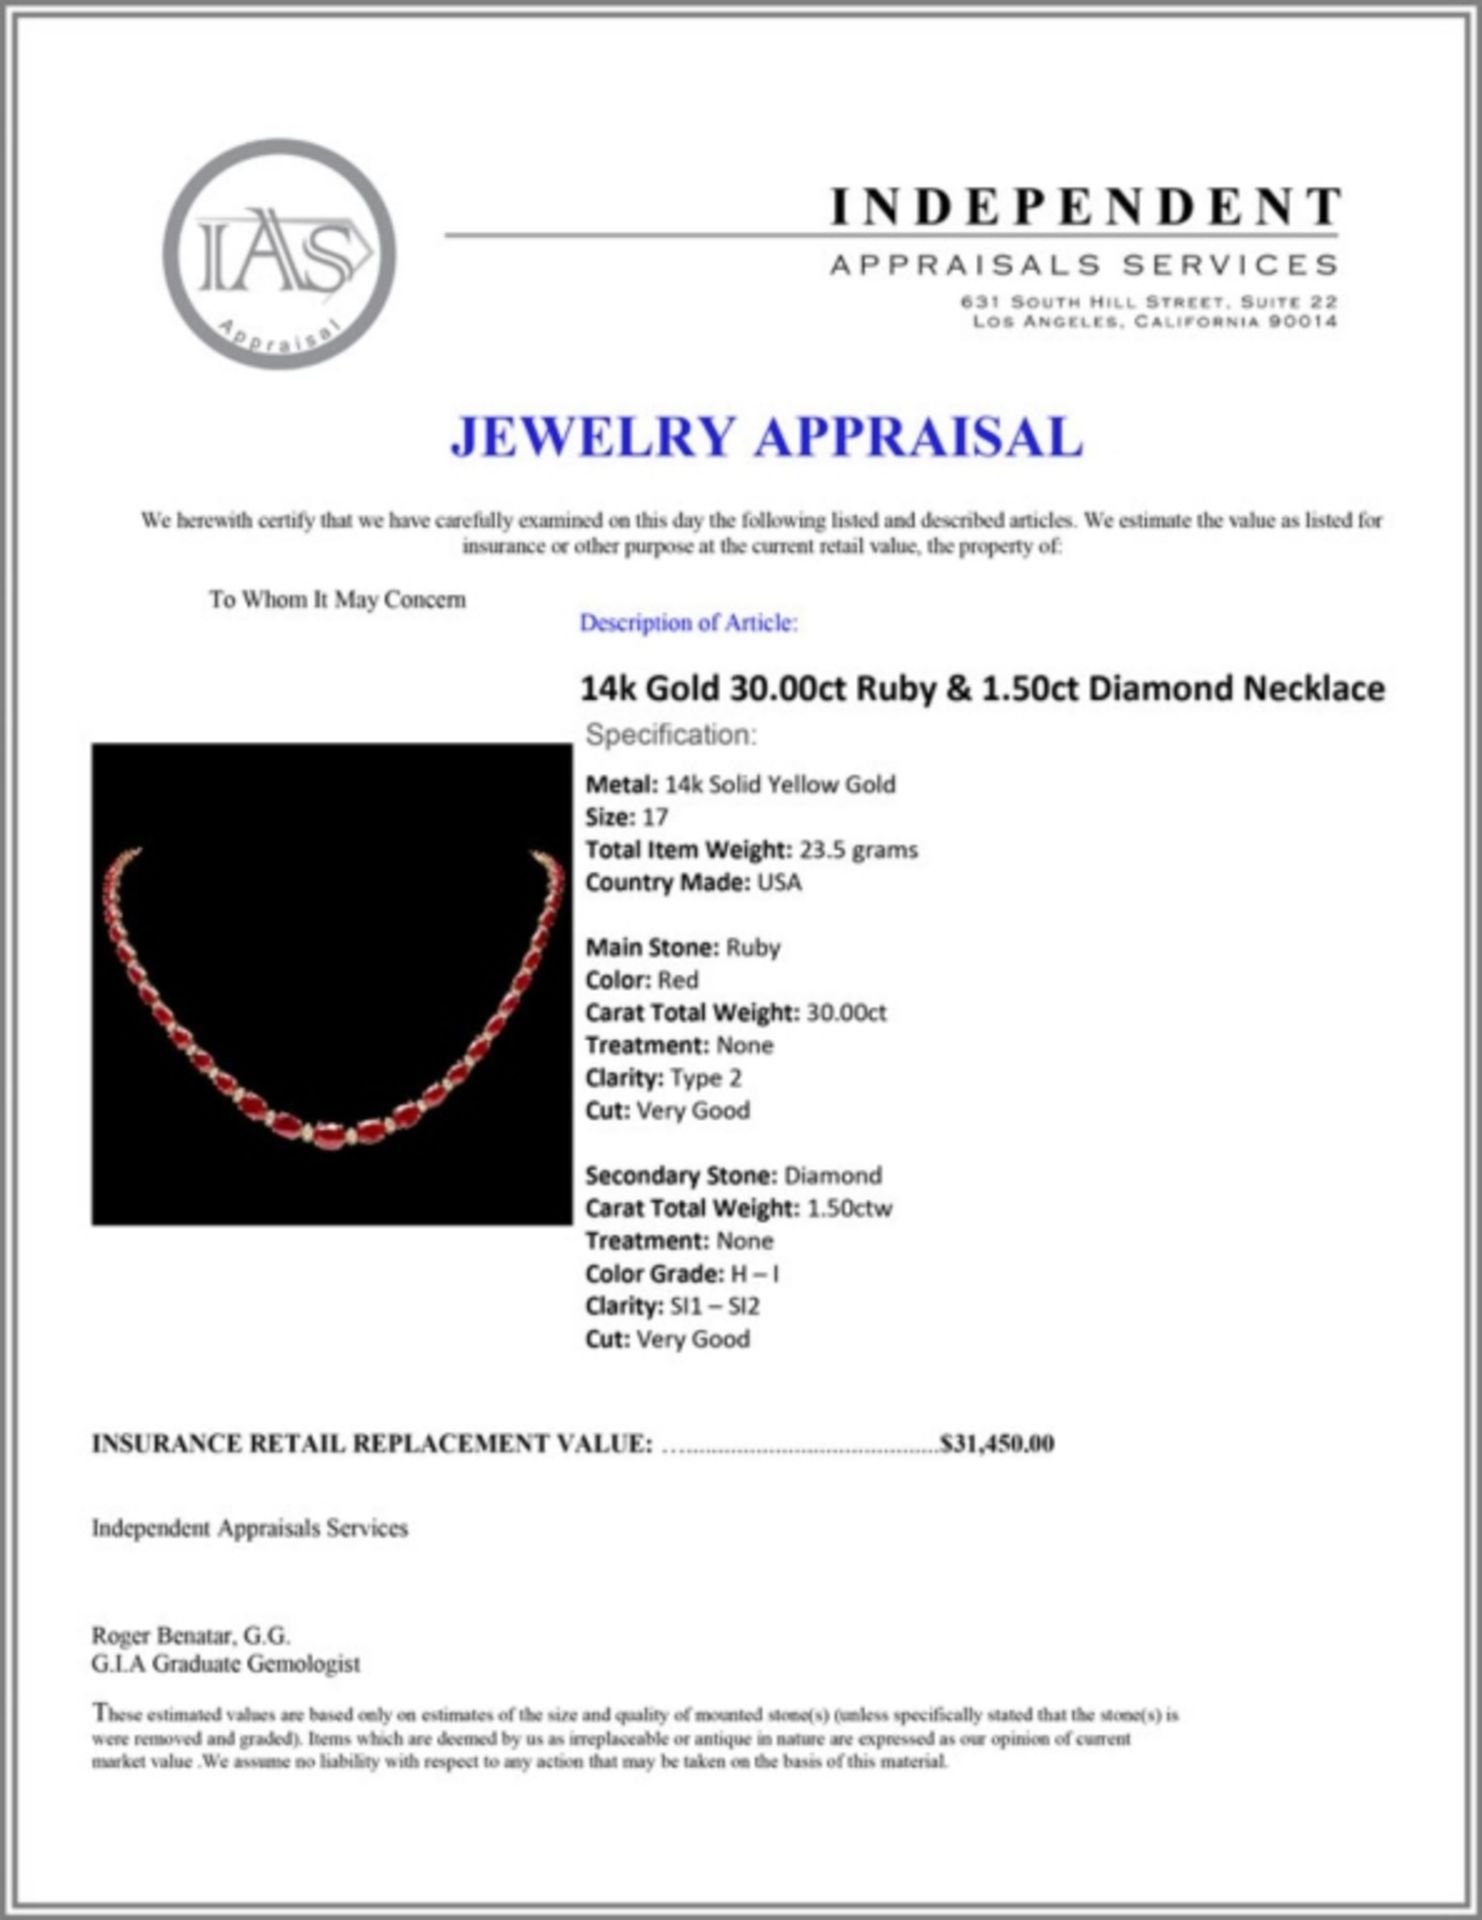 `14k Gold 30.00ct Ruby & 1.50ct Diamond Necklace - Image 3 of 3